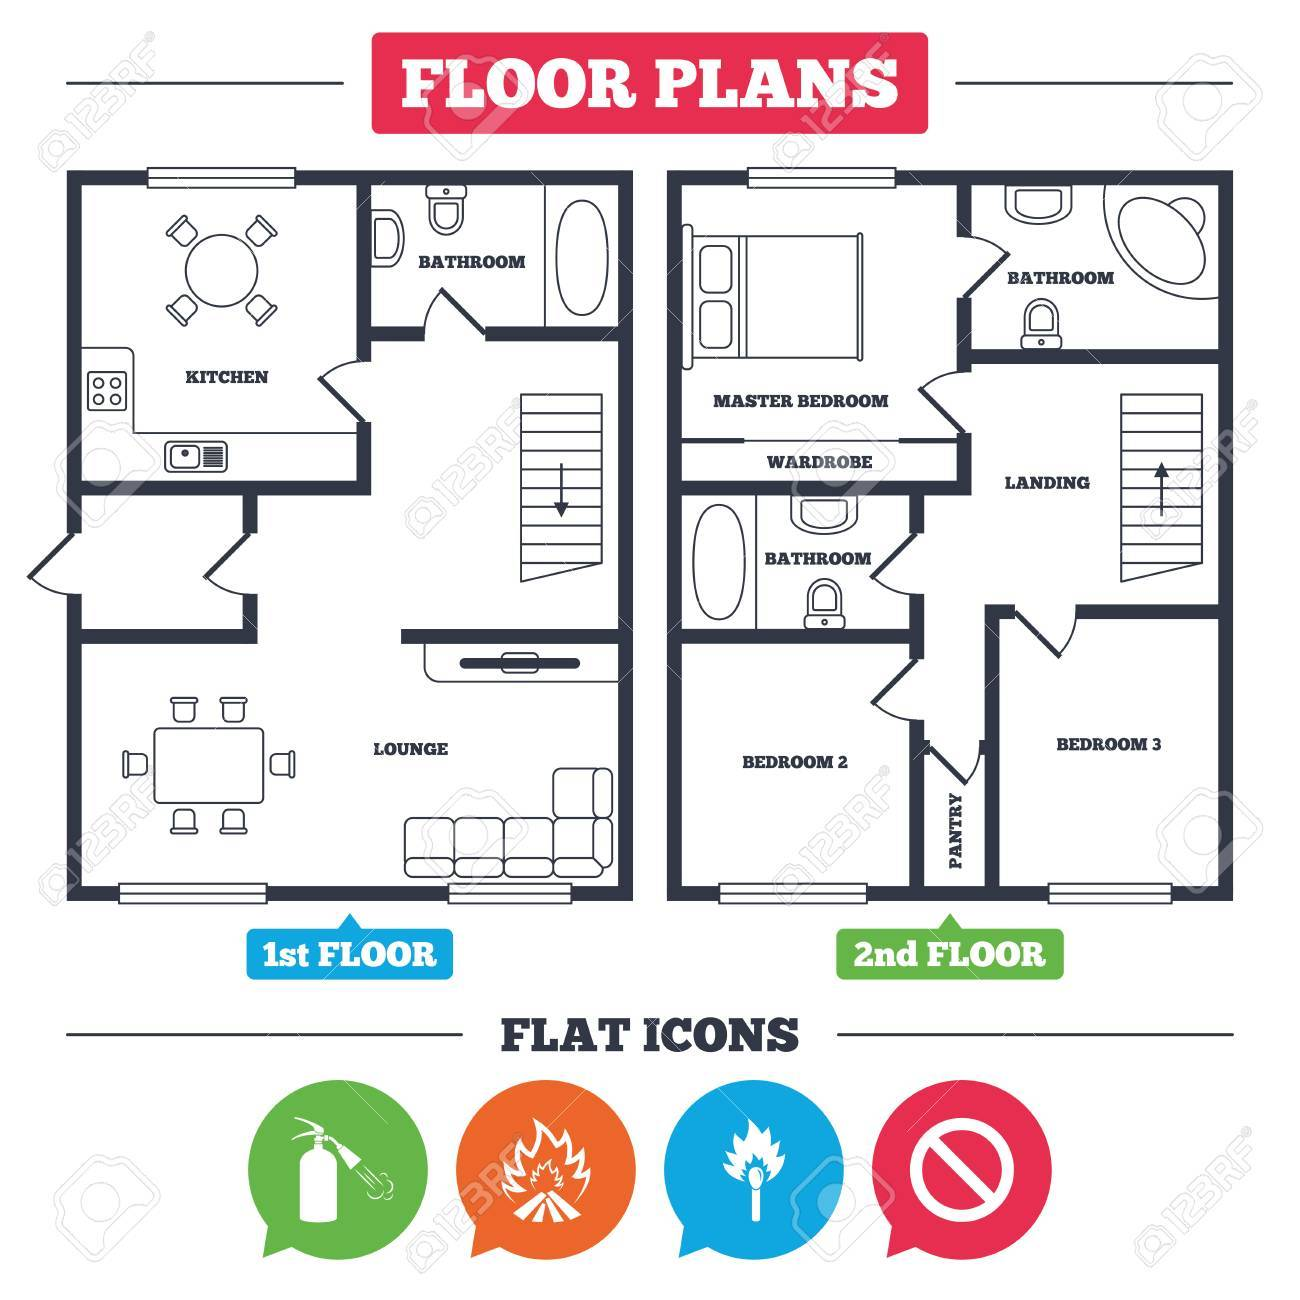 Architecture plan with furniture house floor plan fire flame architecture plan with furniture house floor plan fire flame icons fire extinguisher sign buycottarizona